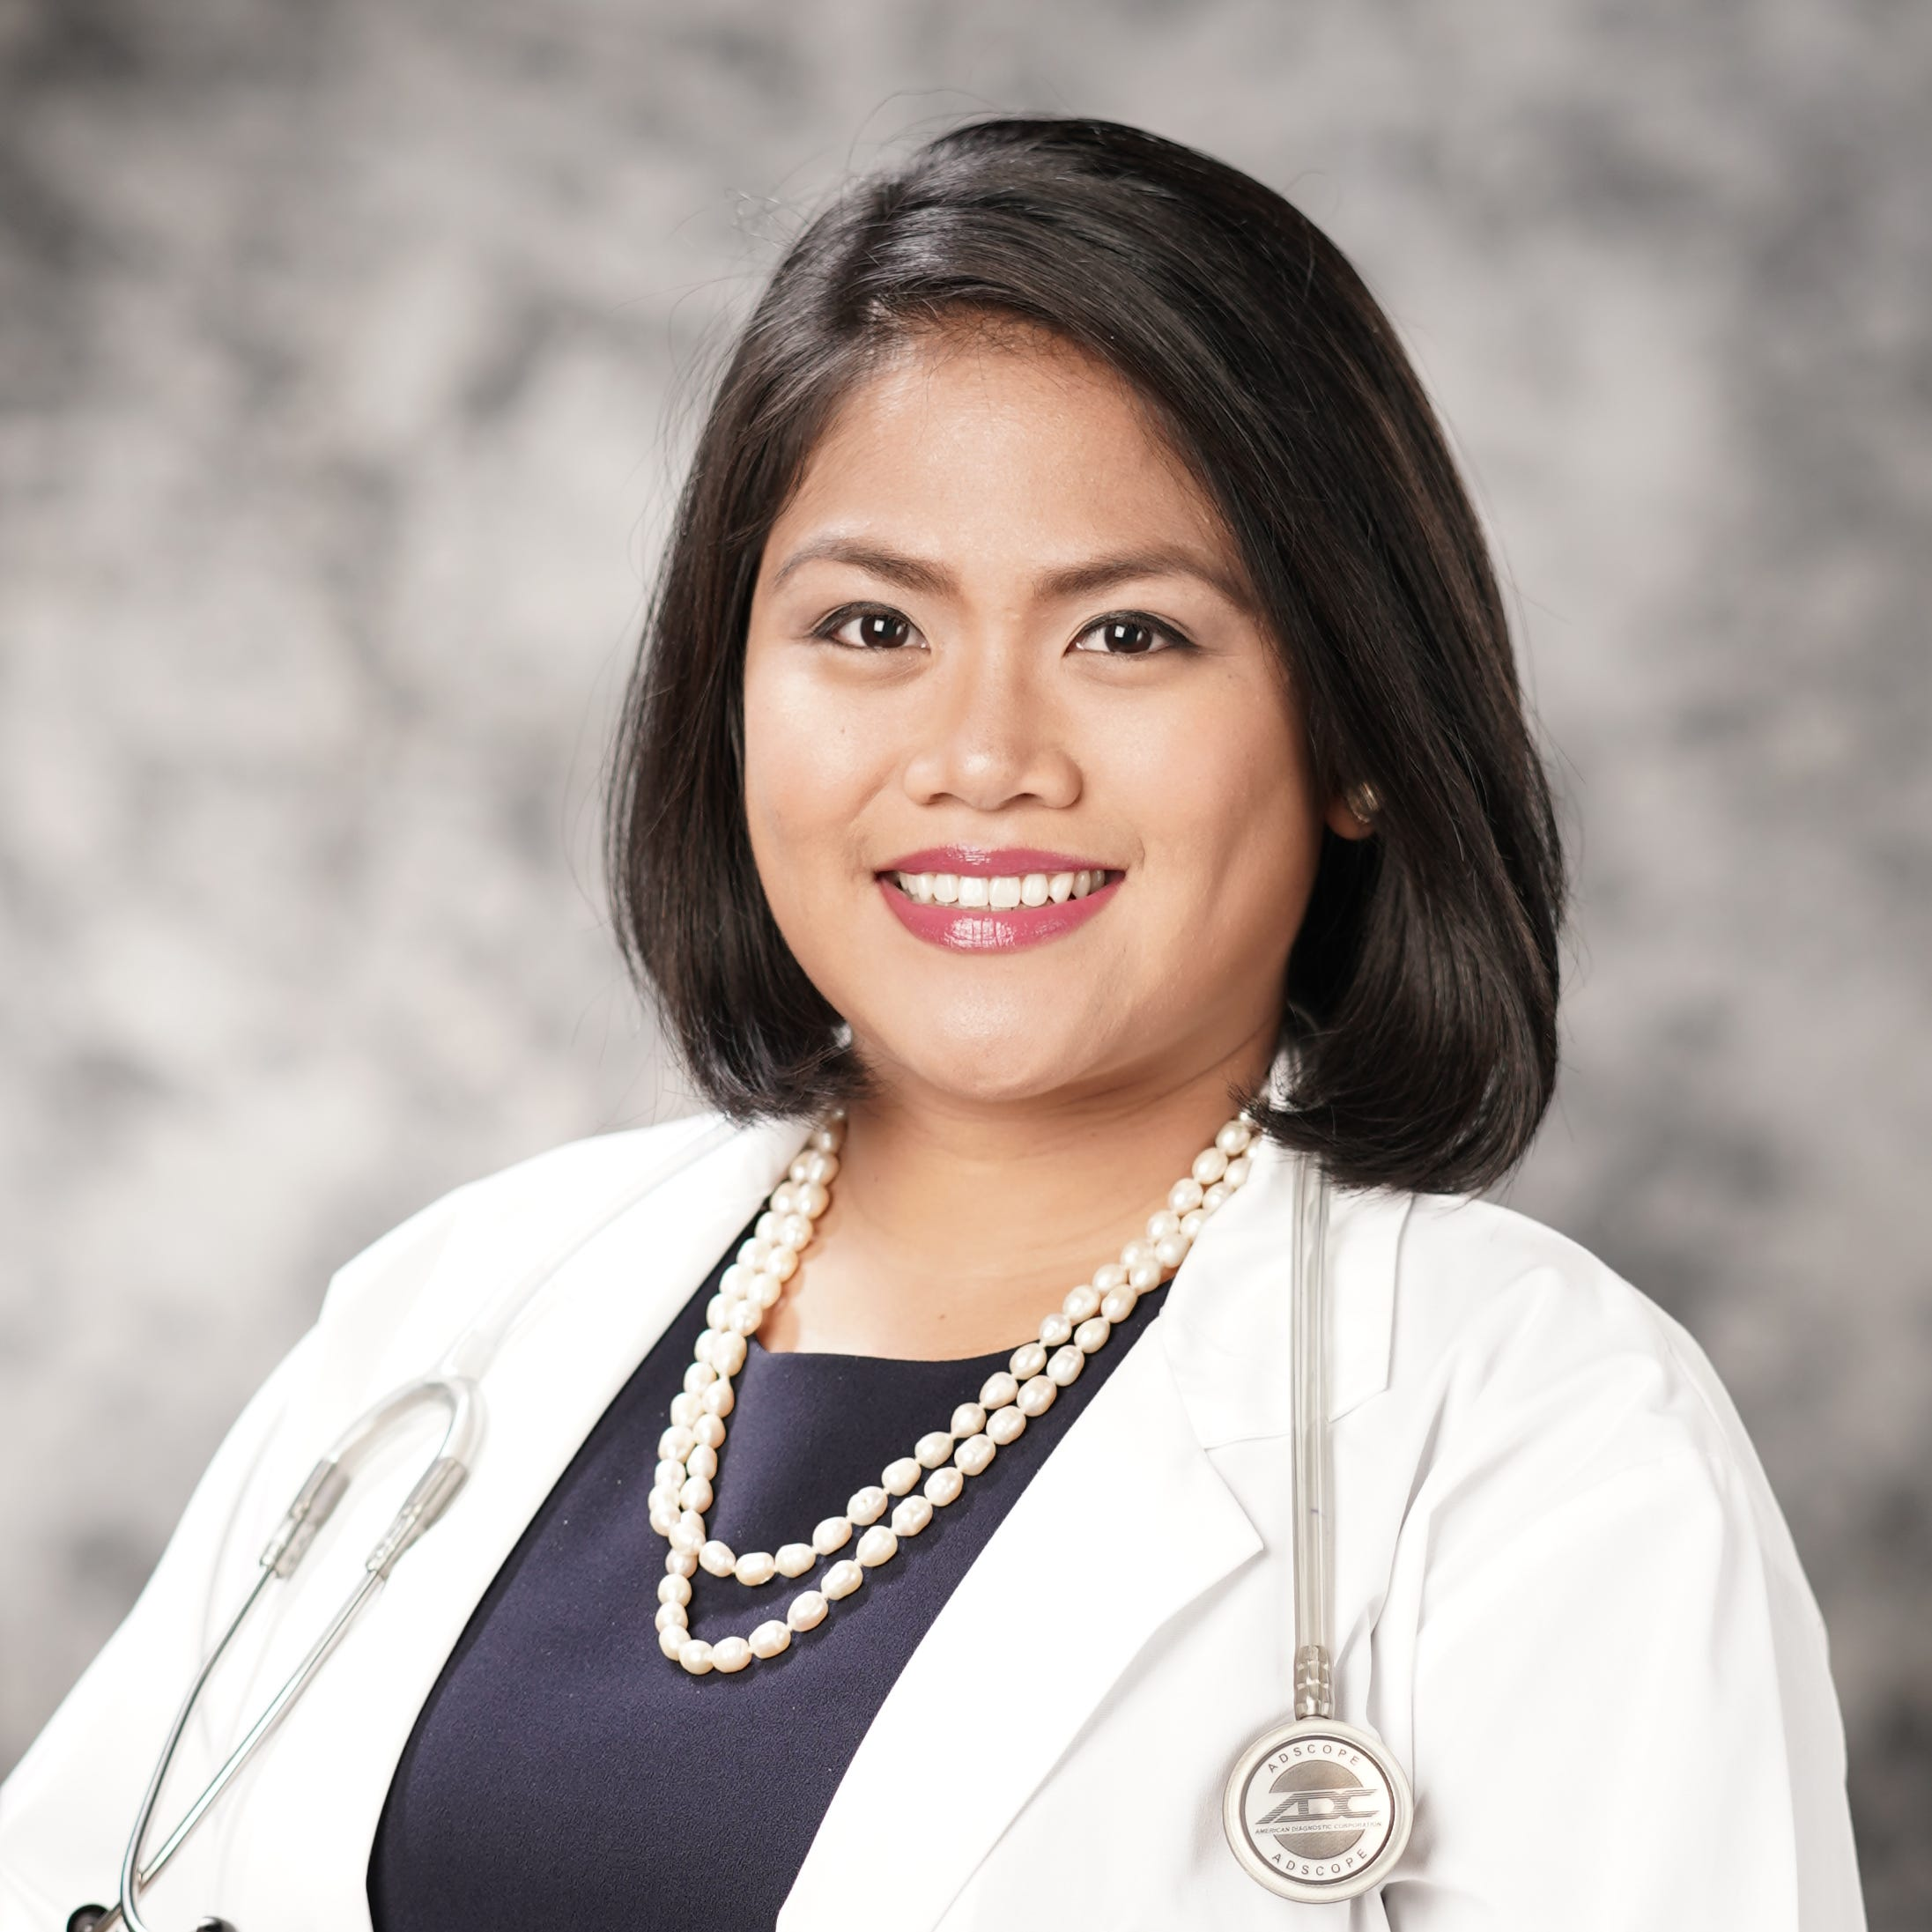 Peachy Mae T. Piaña joins Guam Radiology Consultants